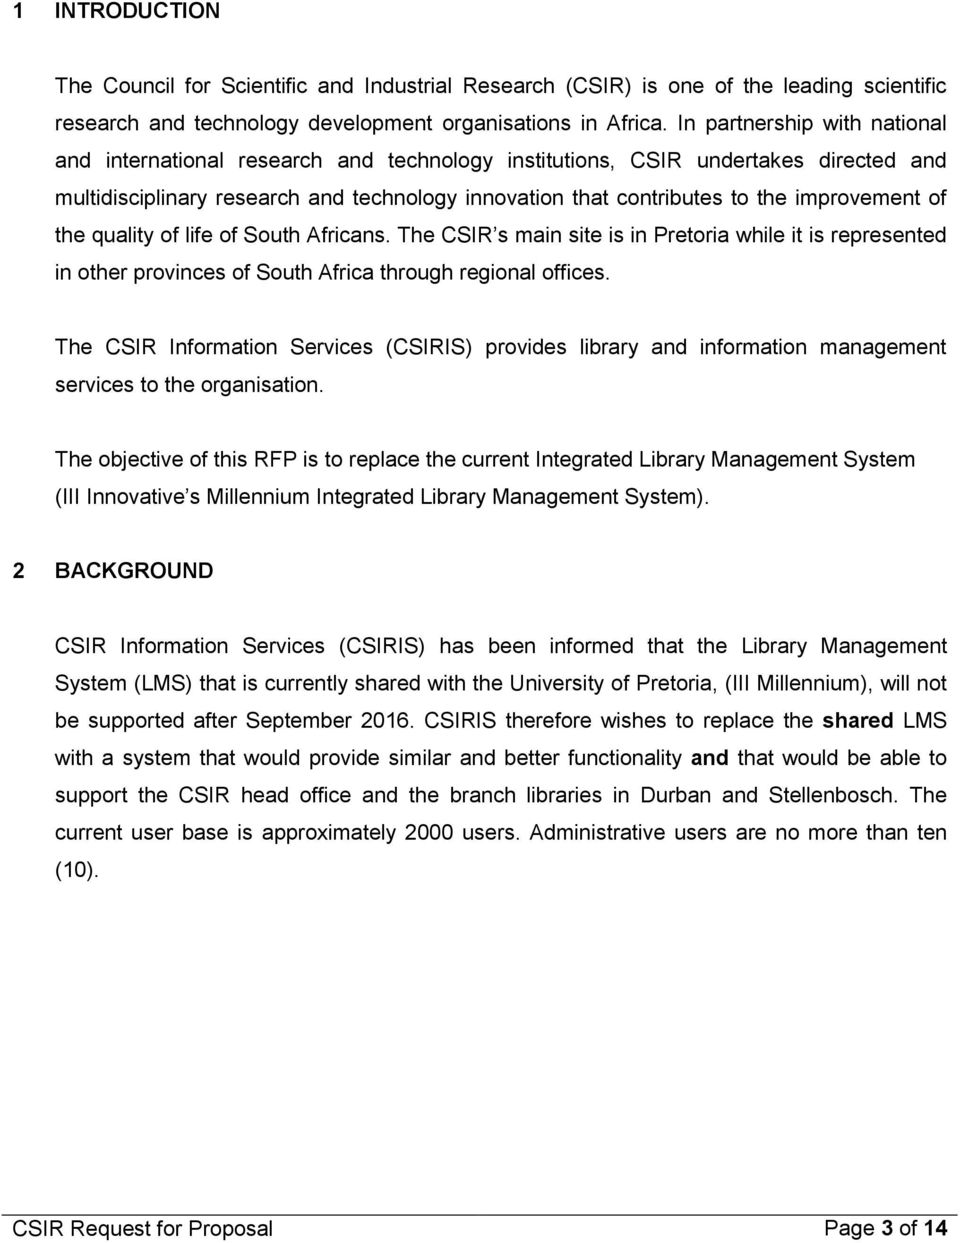 improvement of the quality of life of South Africans. The CSIR s main site is in Pretoria while it is represented in other provinces of South Africa through regional offices.